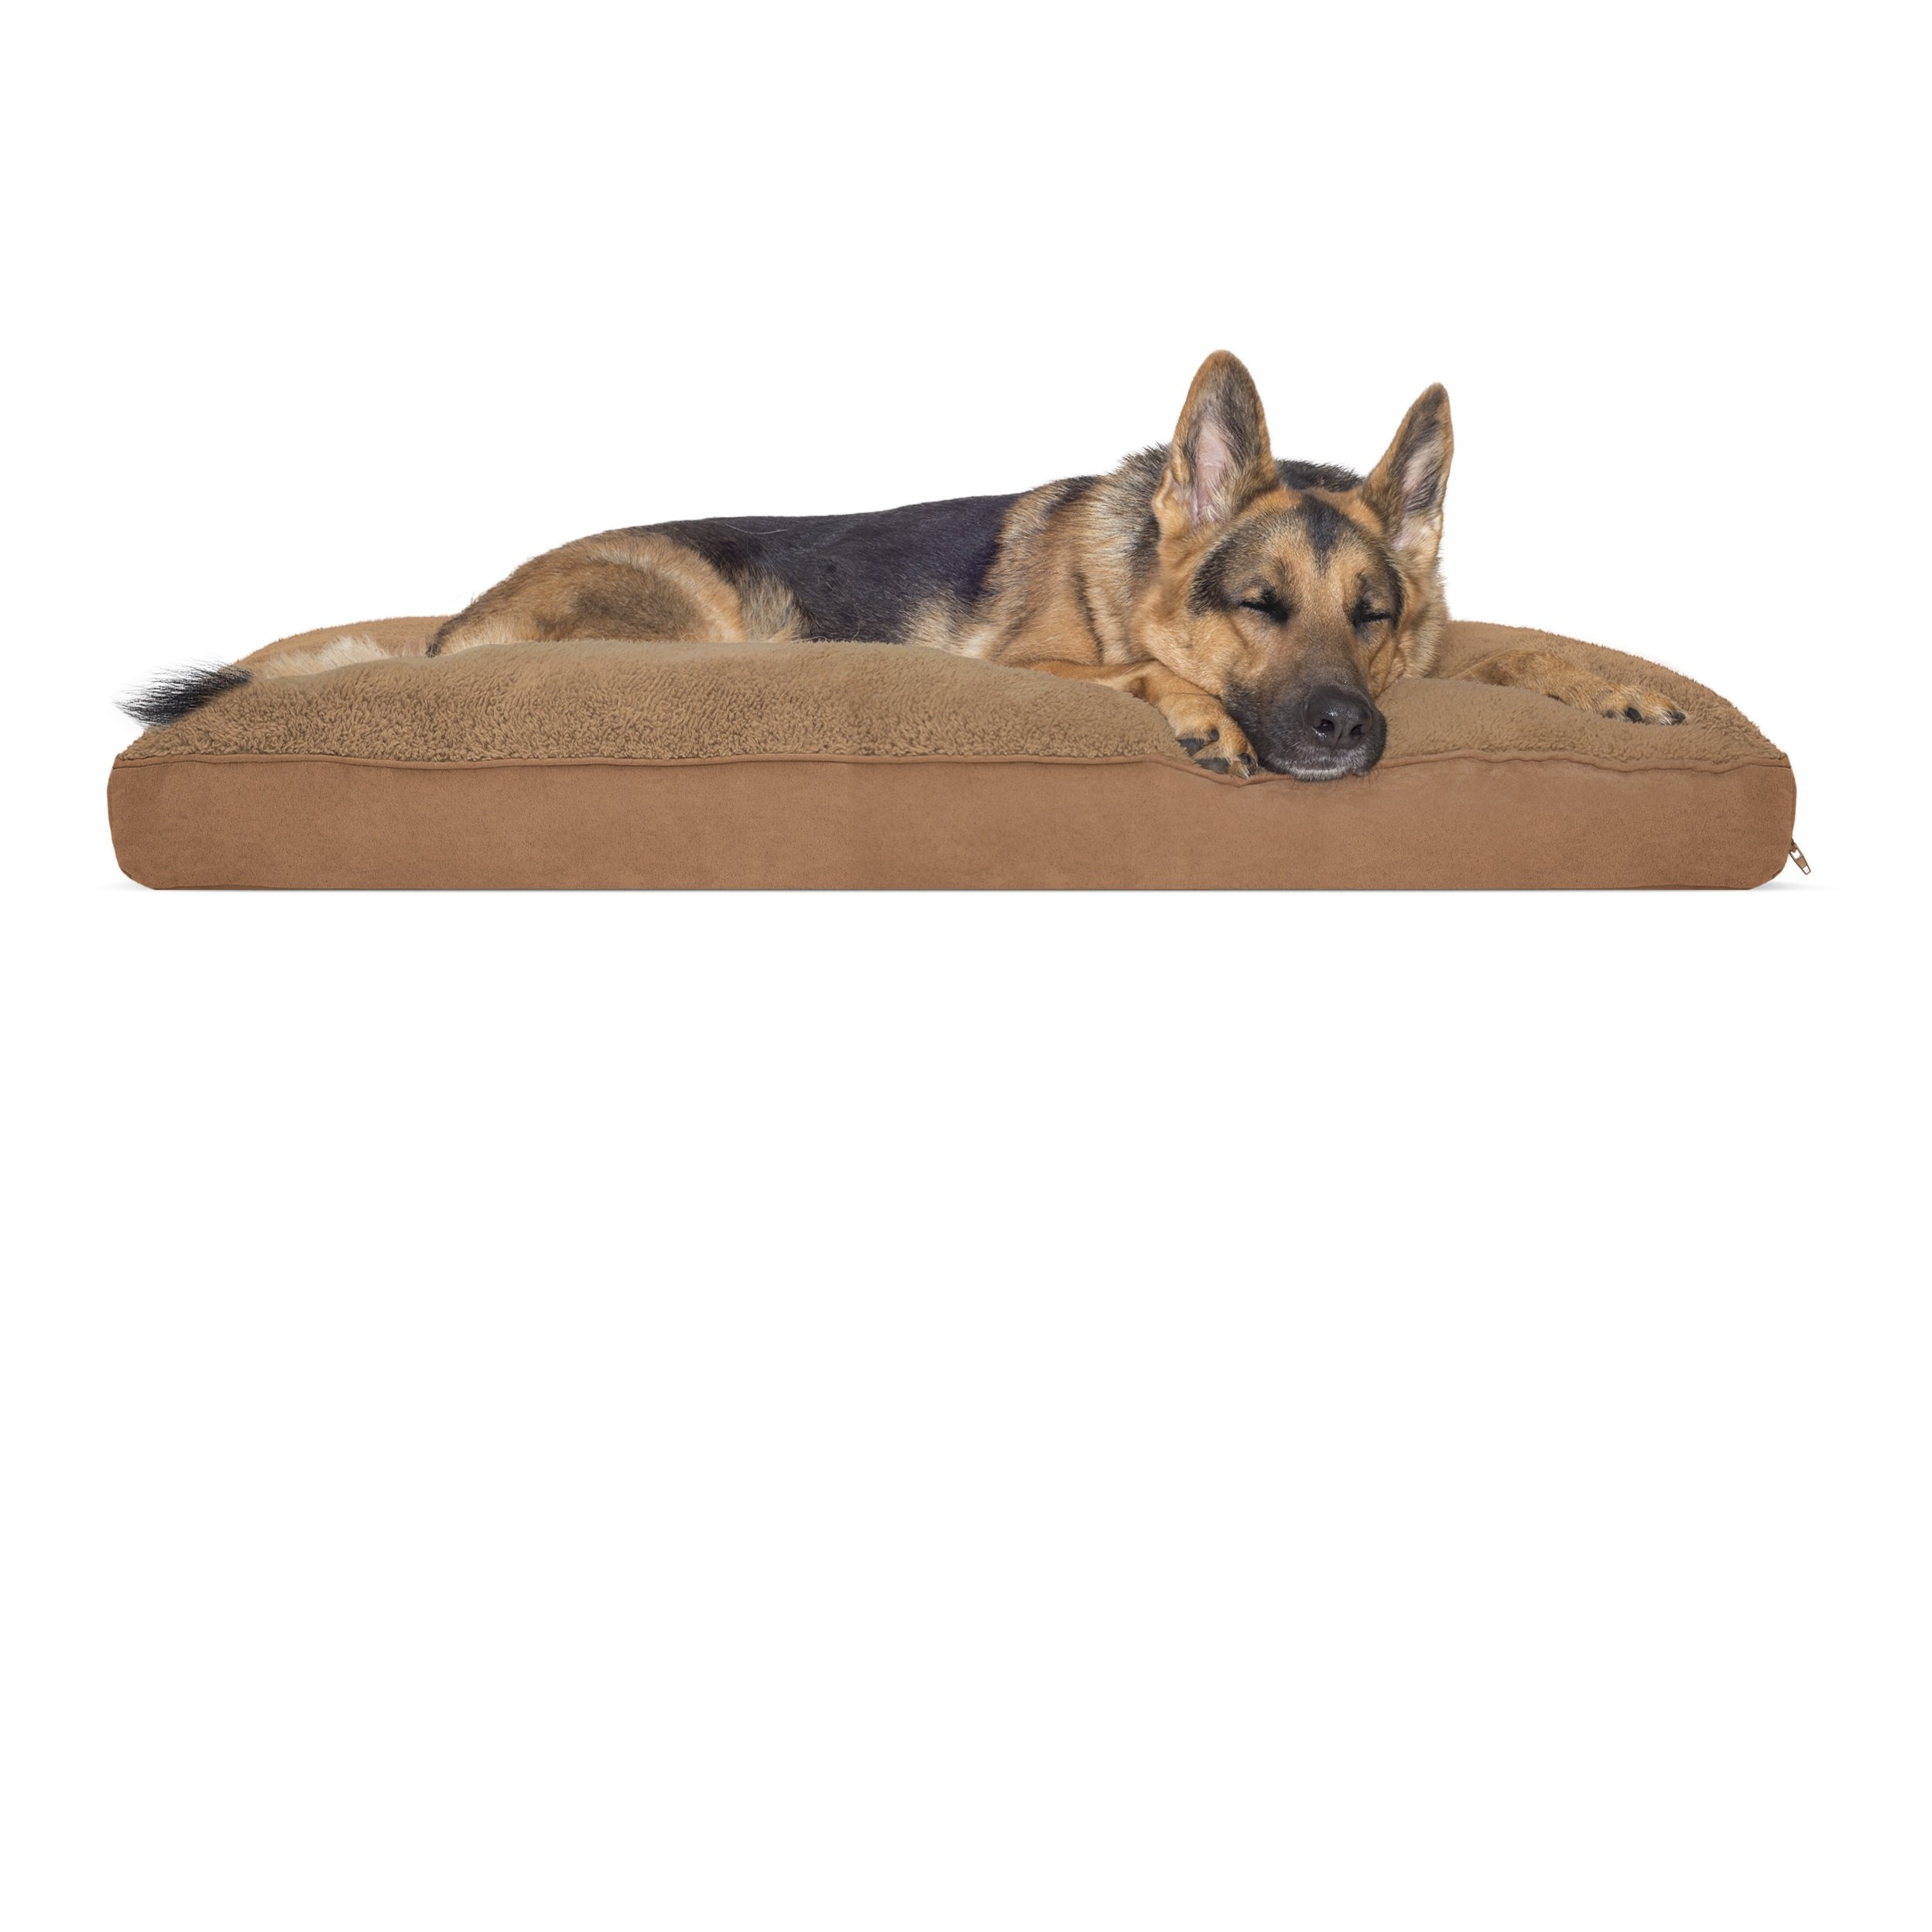 FurHaven Pet Dog Bed | Deluxe Terry & Suede Snuggle Pillow Pet Bed for Dogs & Cats, Camel, Jumbo